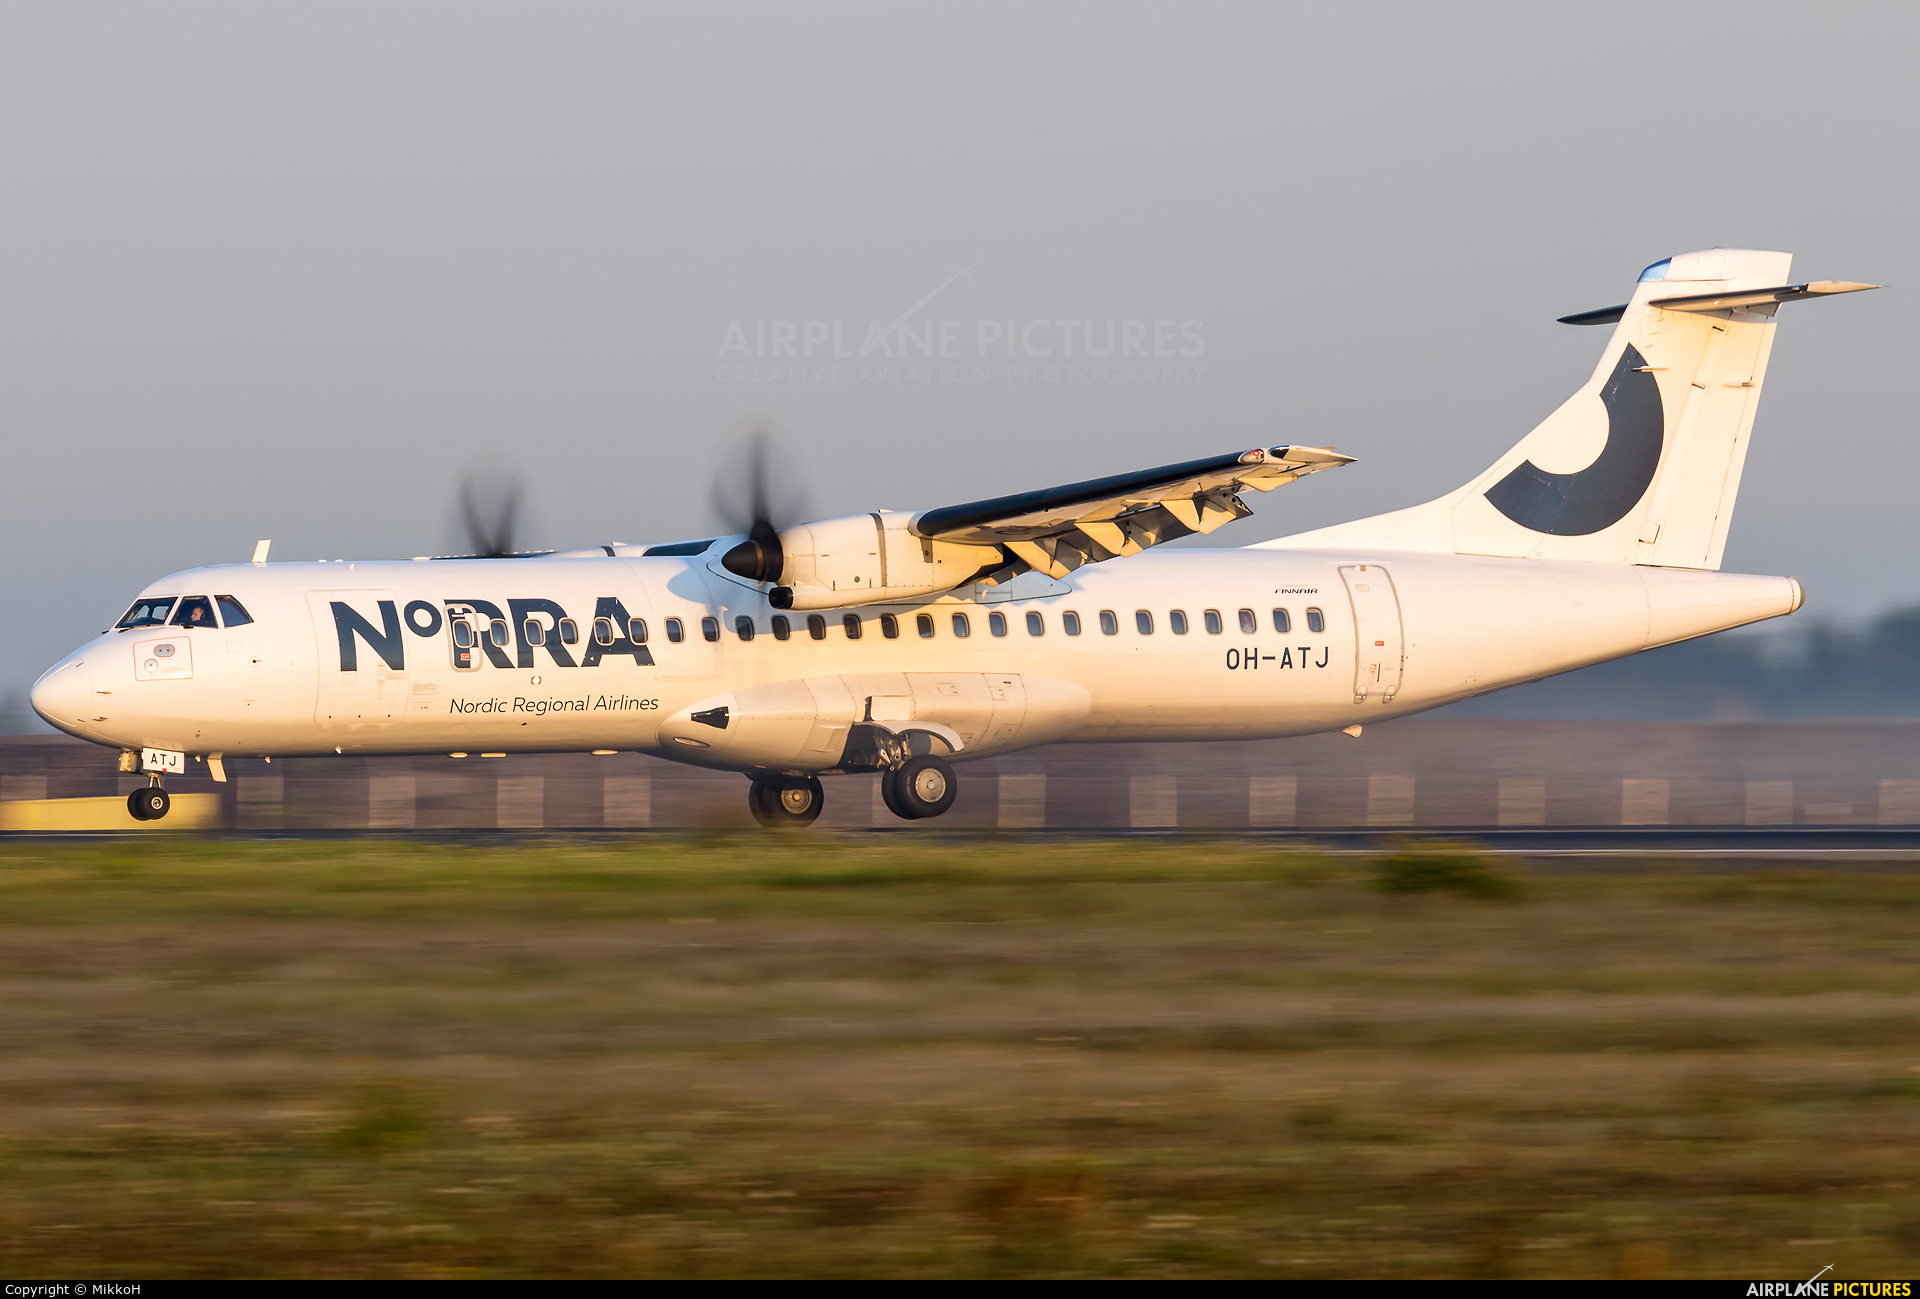 NoRRA - Nordic Regional Airlines OH-ATJ aircraft at Helsinki - Vantaa